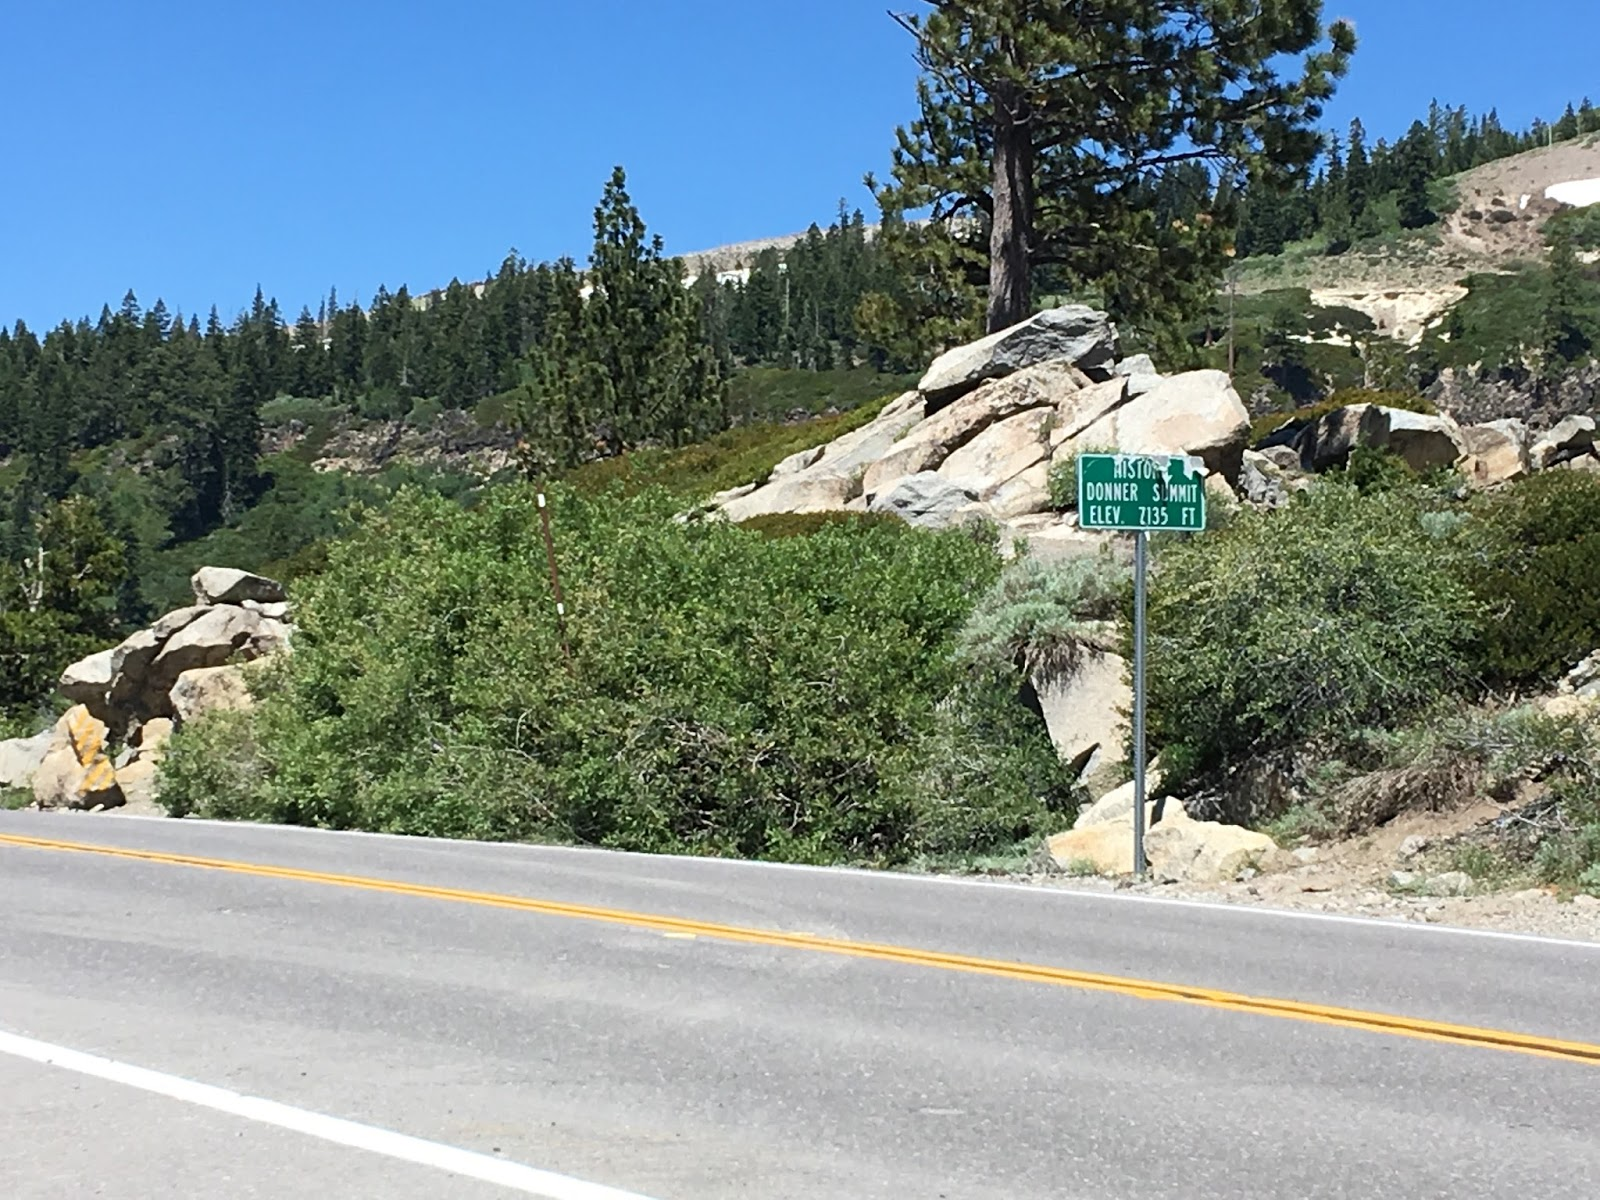 donner pass road passes the aforementioned donner pass ski area before reaching i 80